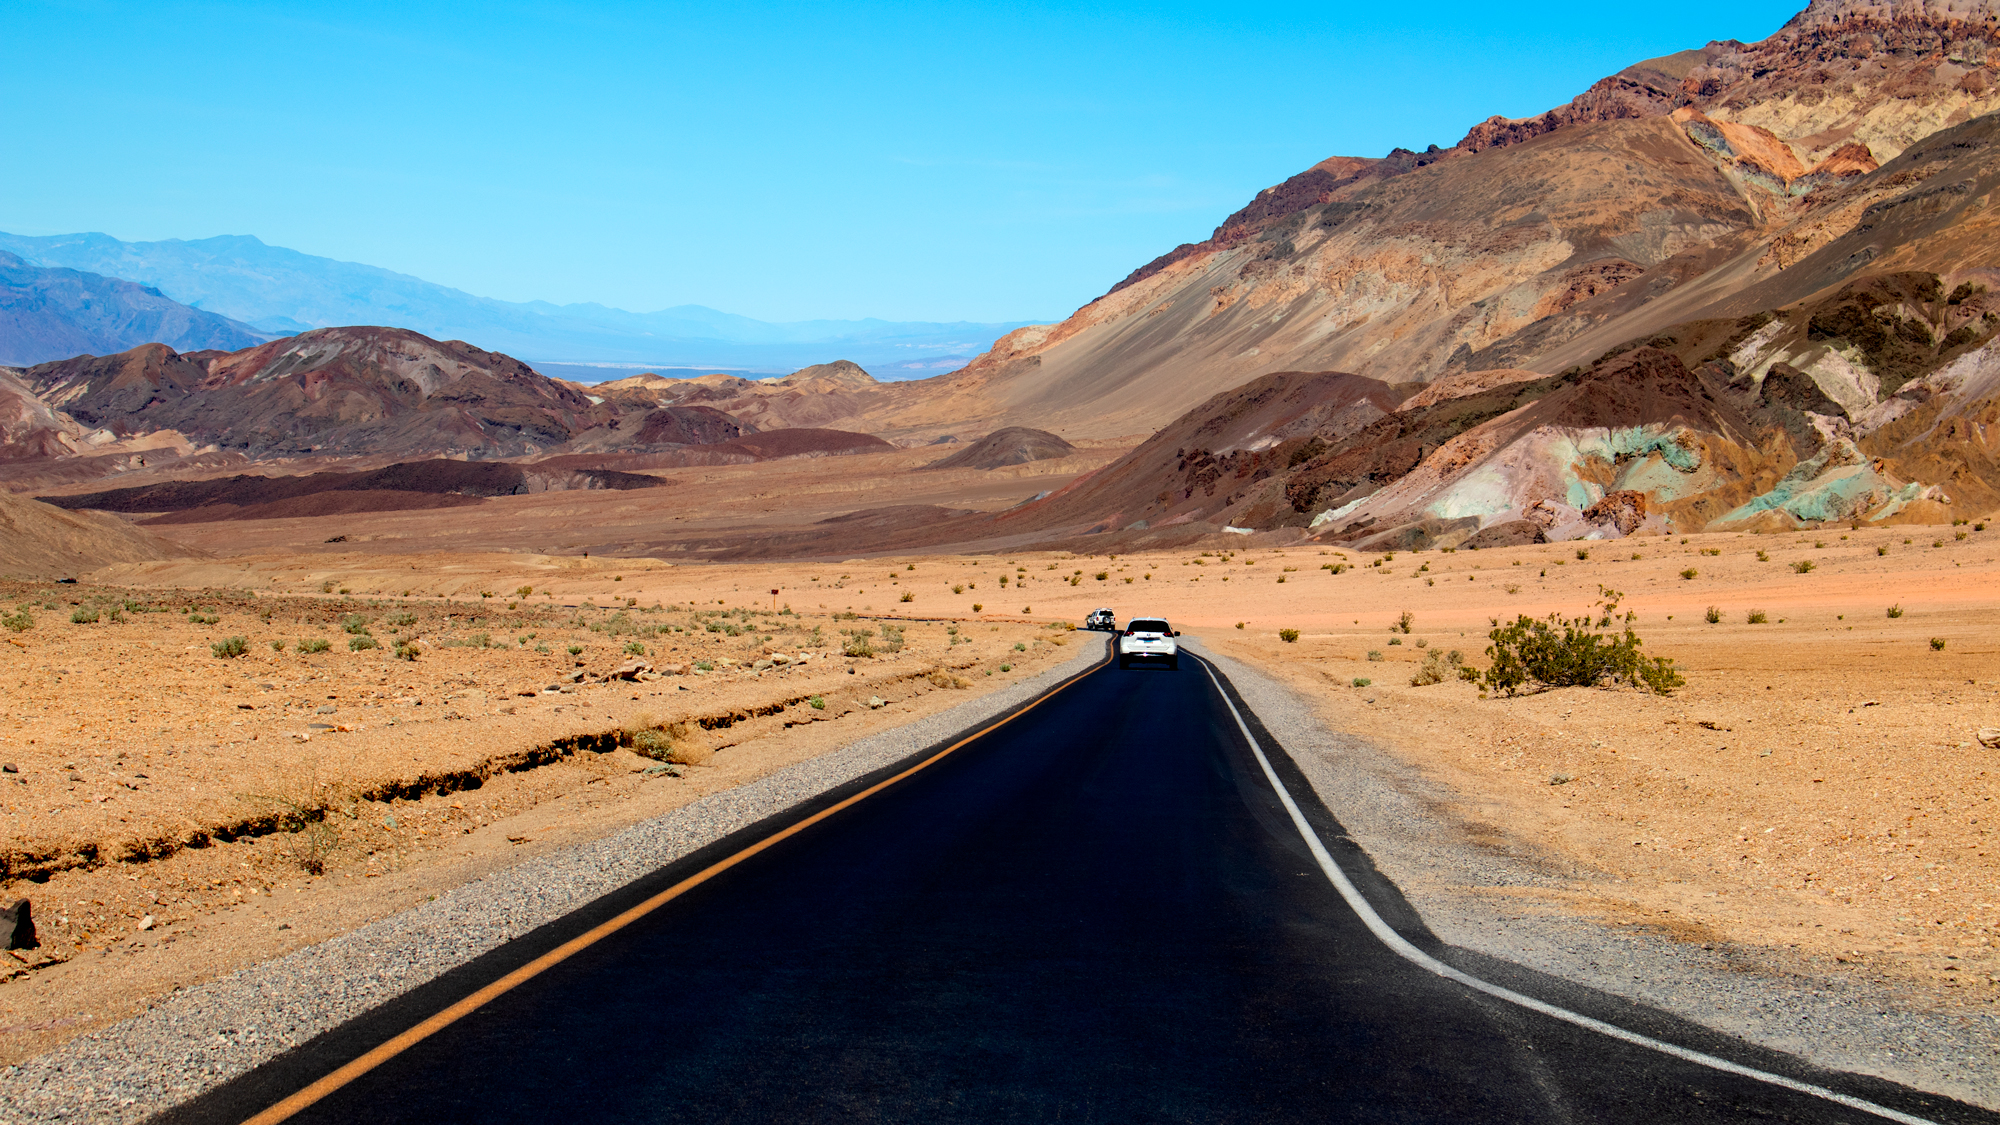 Photo of the road to Artist's Palette, a colorful rock formation in Death Valley National Park